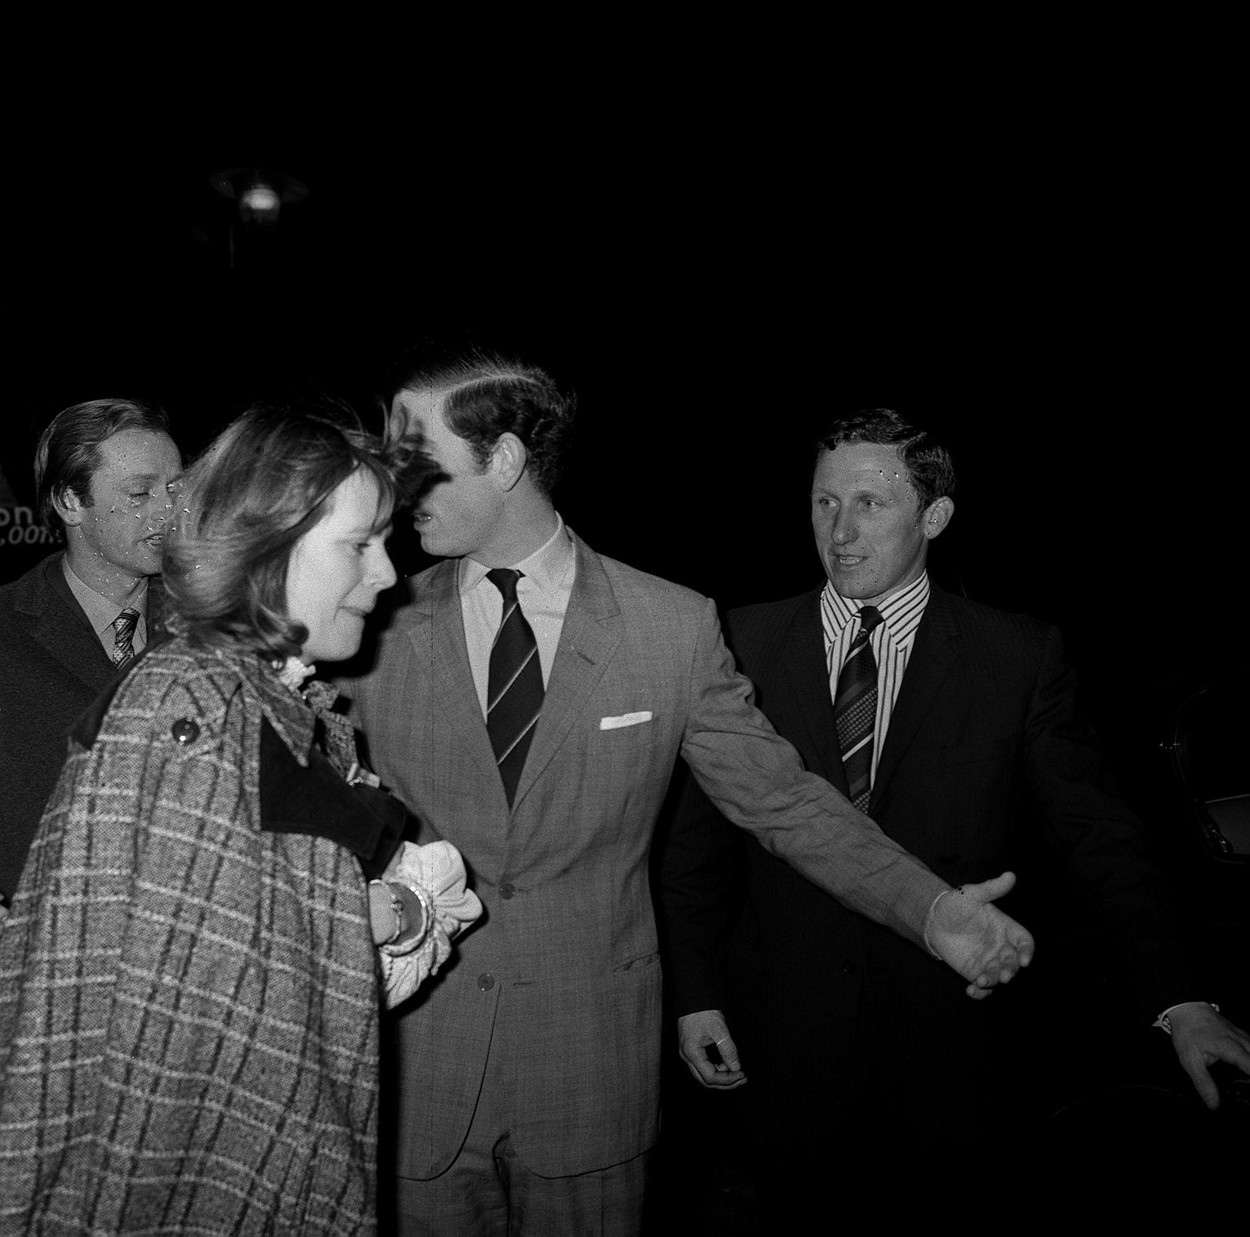 PA NEWS PHOTO 14/2/75  CAMILLA PARKER-BOWLES AND THE PRINCE OF WALES LEAVING THE NEW LONDON THEATRE IN DRURY LANE AFTER ATTENDING THE DEJA REVUE,Image: 105905962, License: Rights-managed, Restrictions: , Model Release: no, Credit line: PA Archive/Press Association Images / PA Images / Profimedia